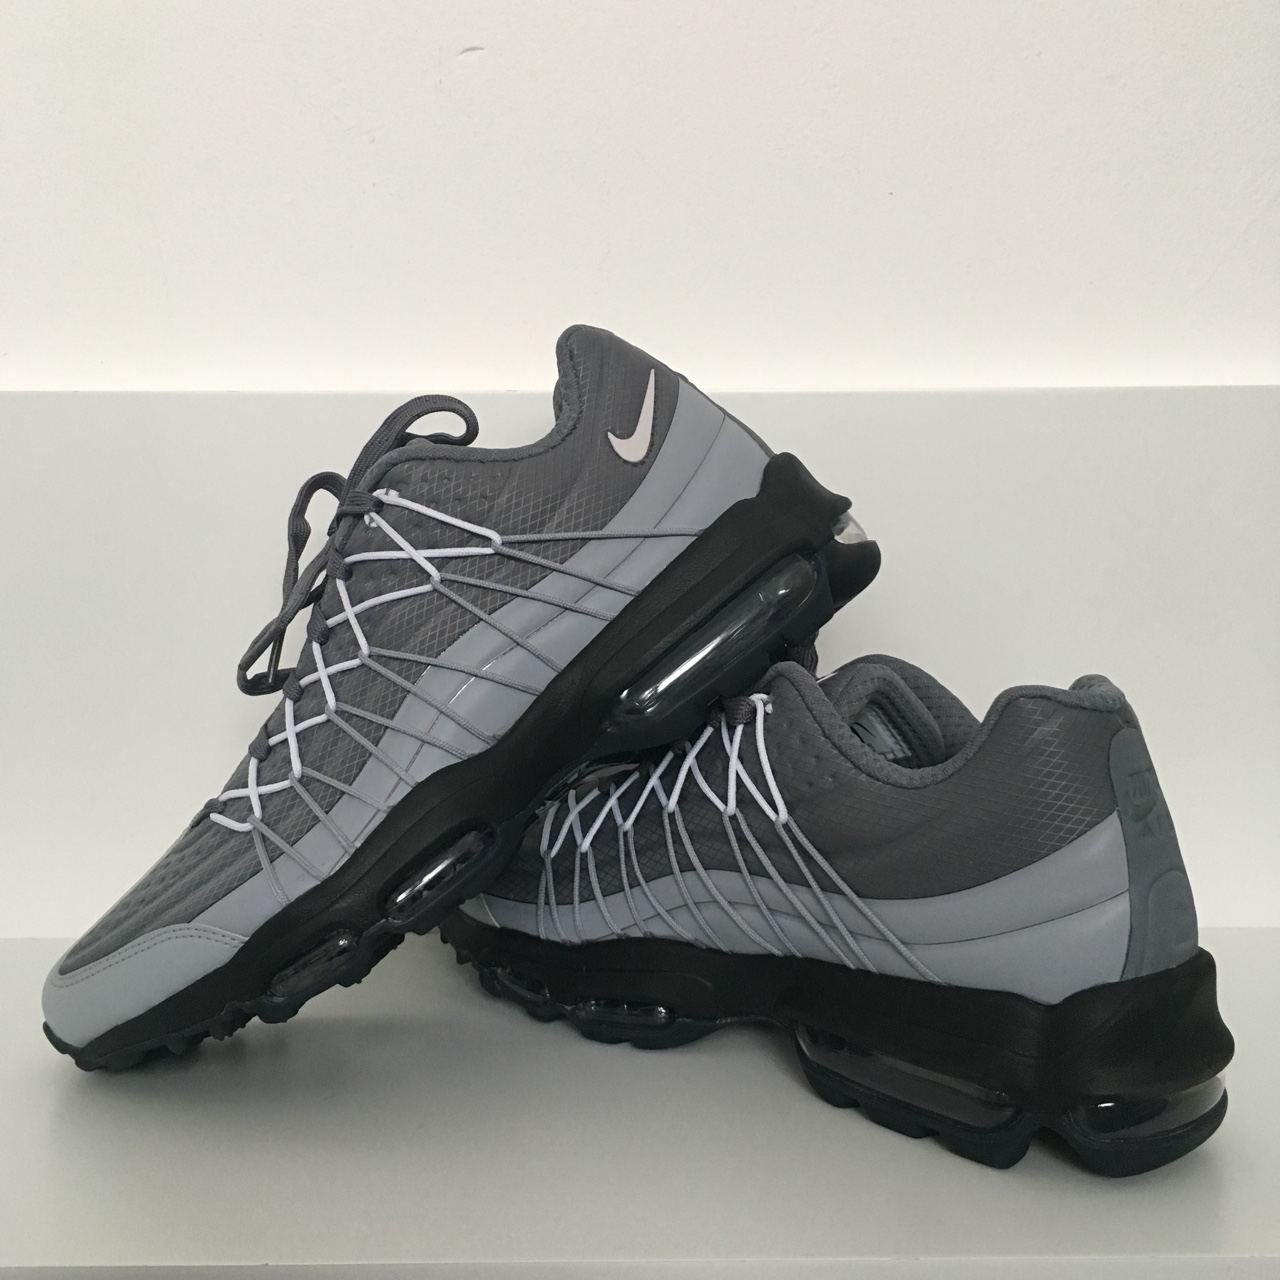 premium selection 399e2 c5a42 Nike Air Max 95 ULTRA SE Brand new in original... - Depop